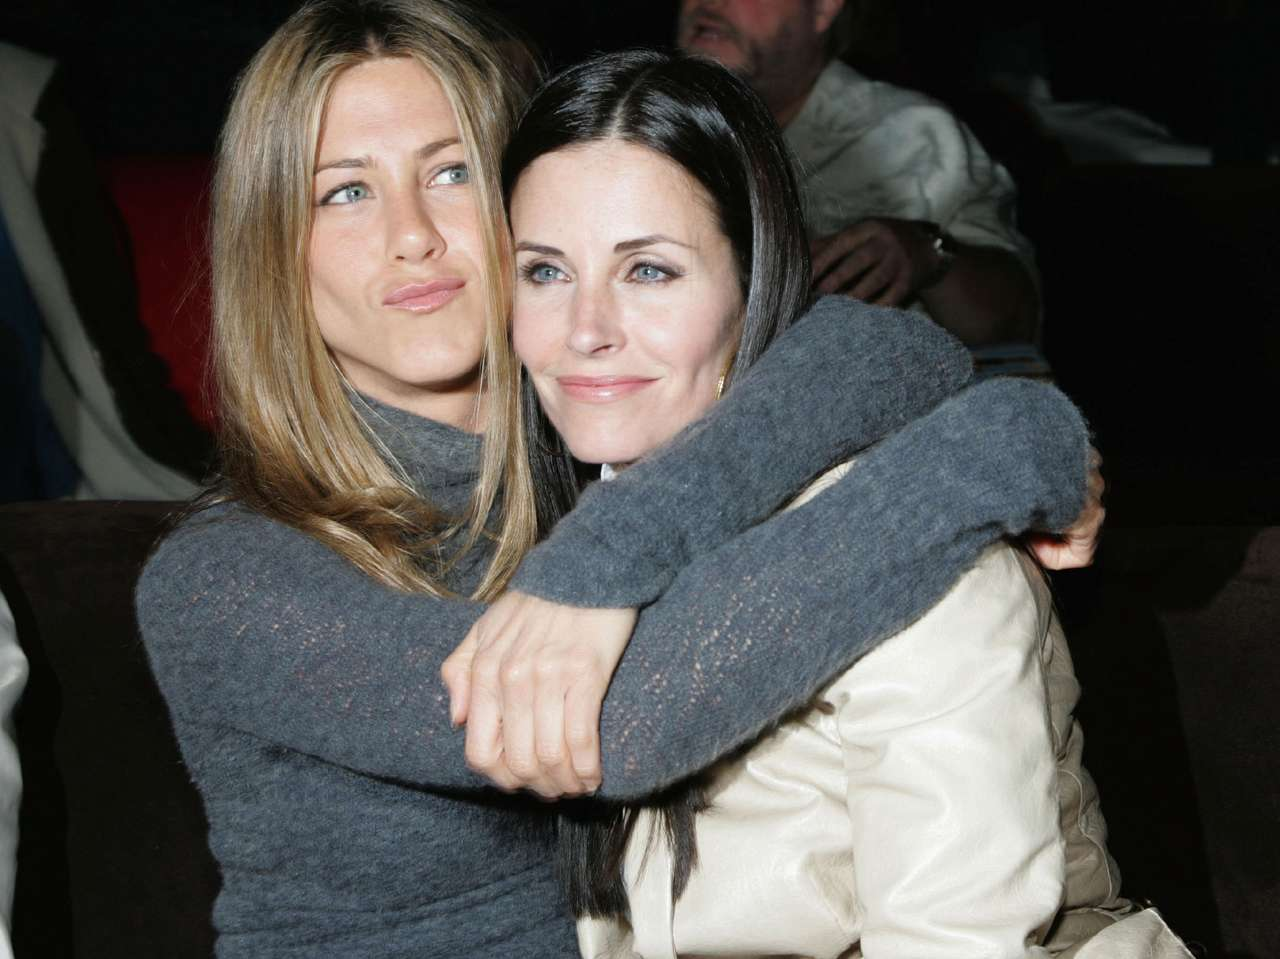 Amigos famosos: Courteney Cox y Jennifer Aniston. Foto: Getty Images